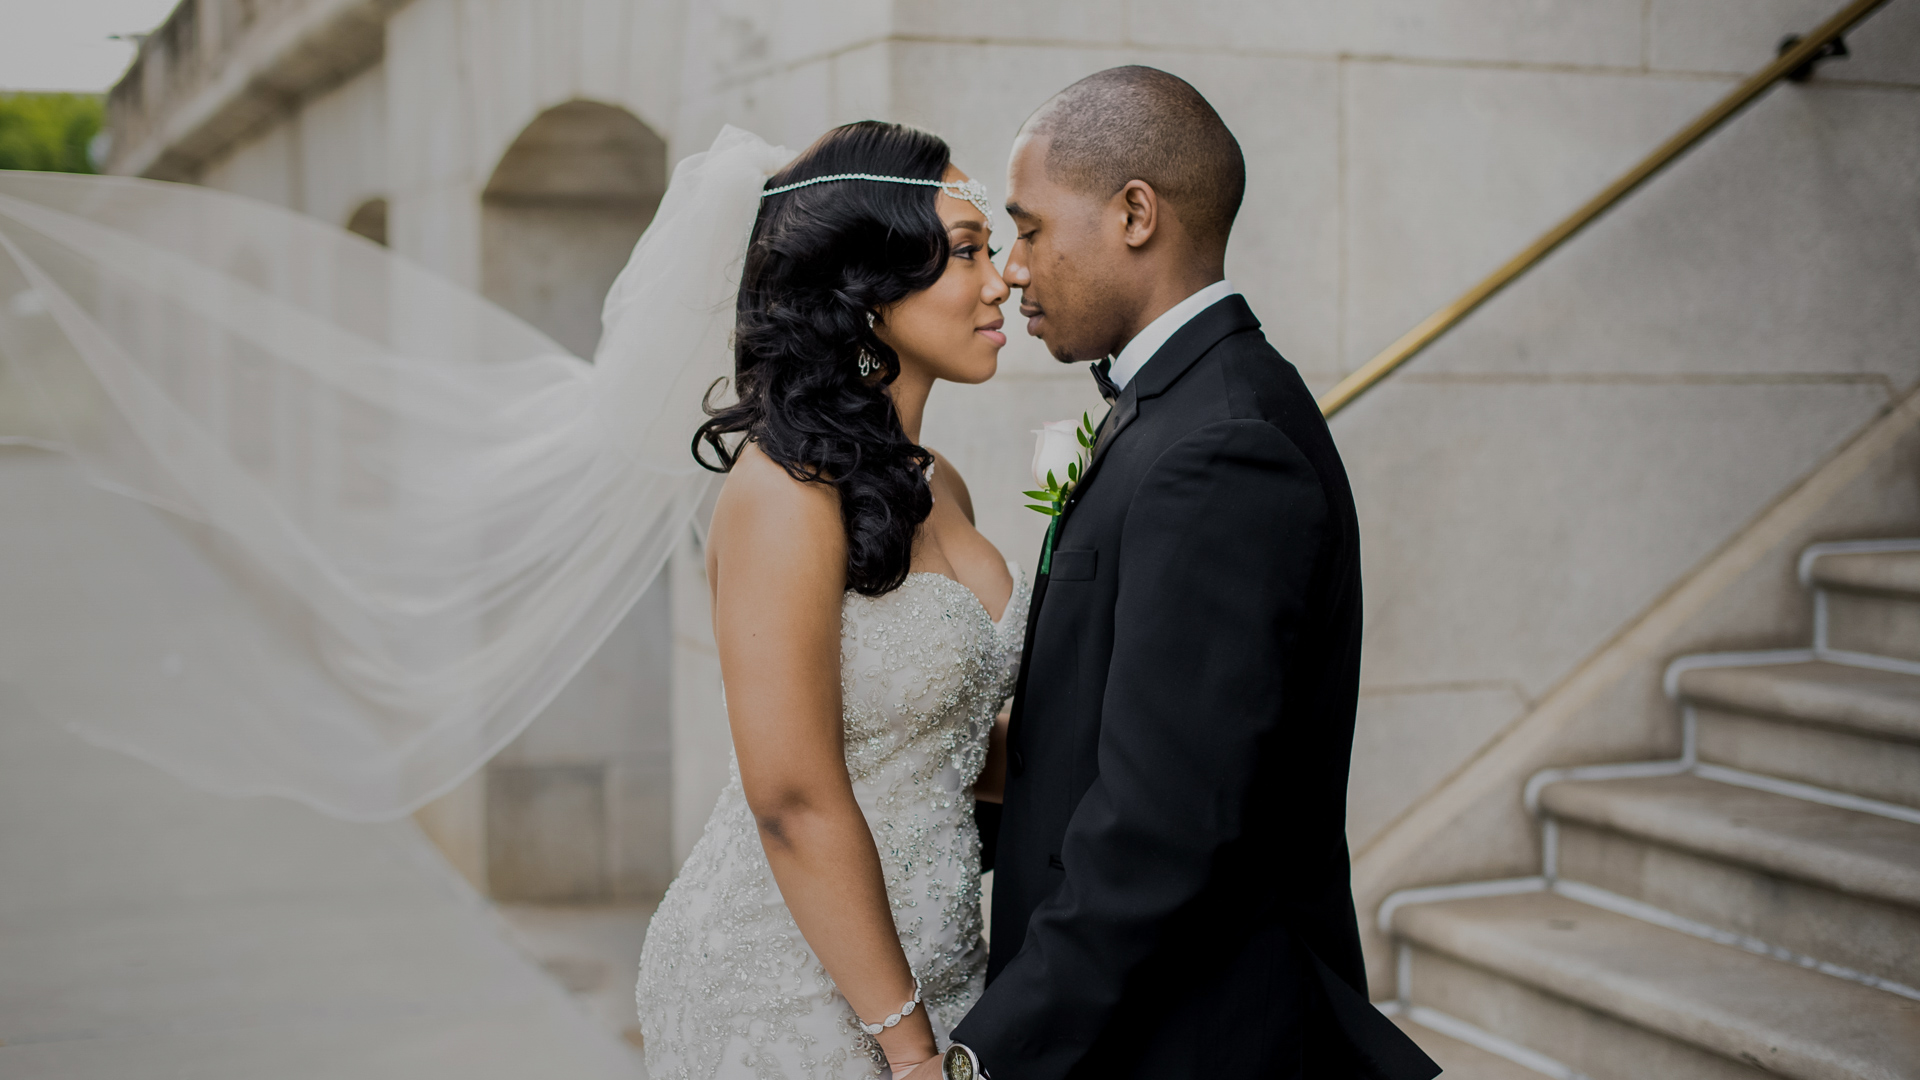 Check portfolios, pricing and availability for wedding photographers in Atlanta